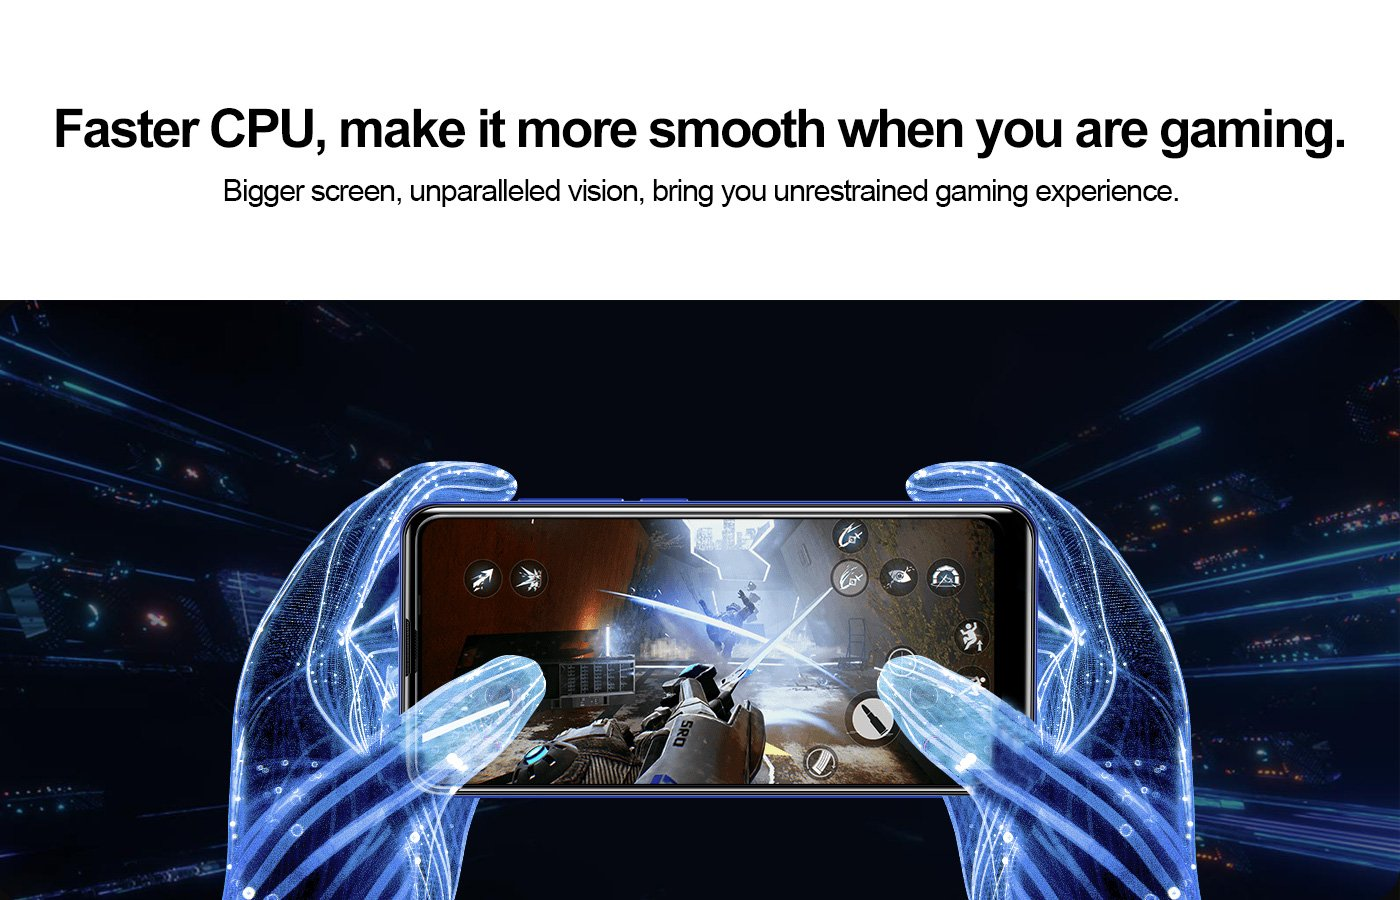 S10 2020 New Unlocked Cell Phone Android 9.0 Smartphone Dual SIM Quad Core Cheap